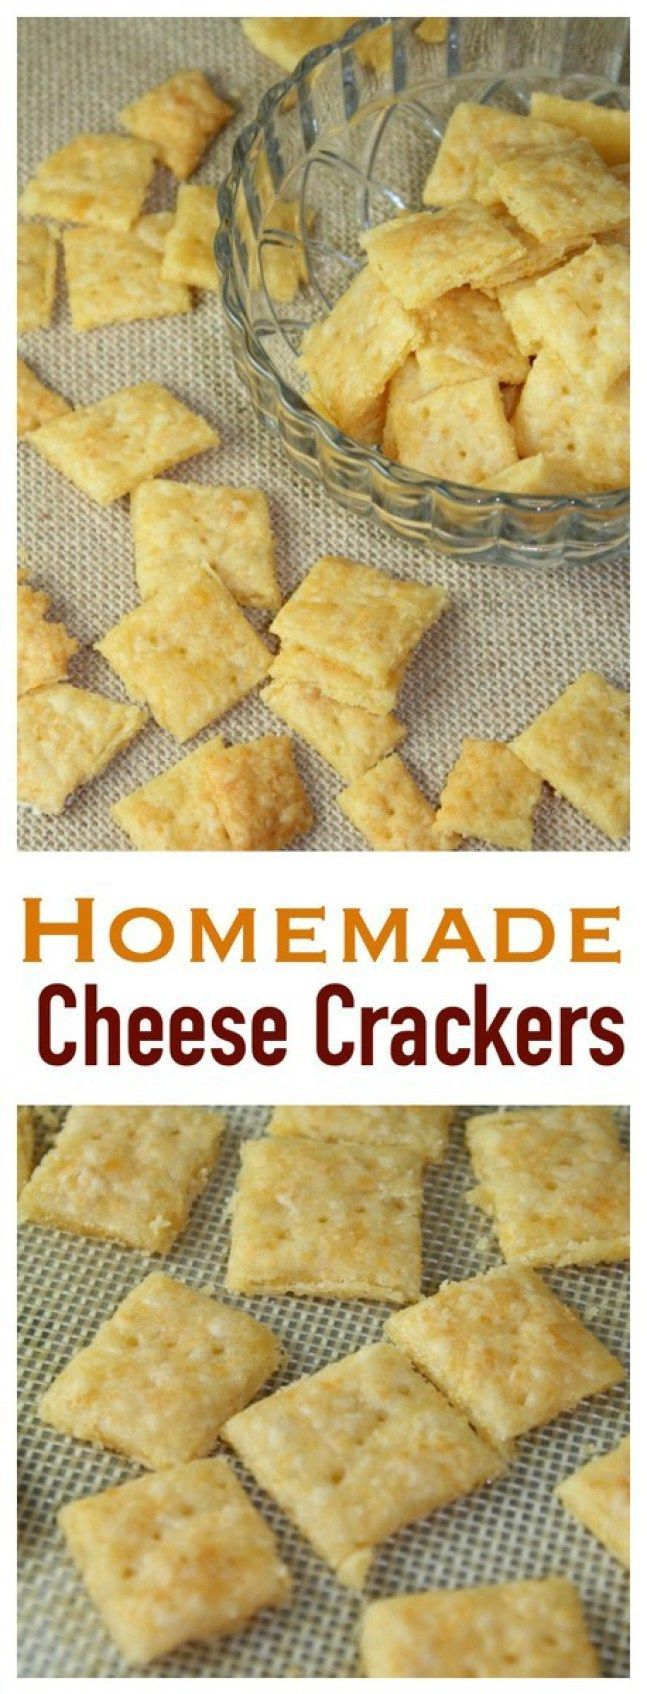 Homemade Cheese Crackers are SO easy and so delicious! You won't be able to stop eating these!